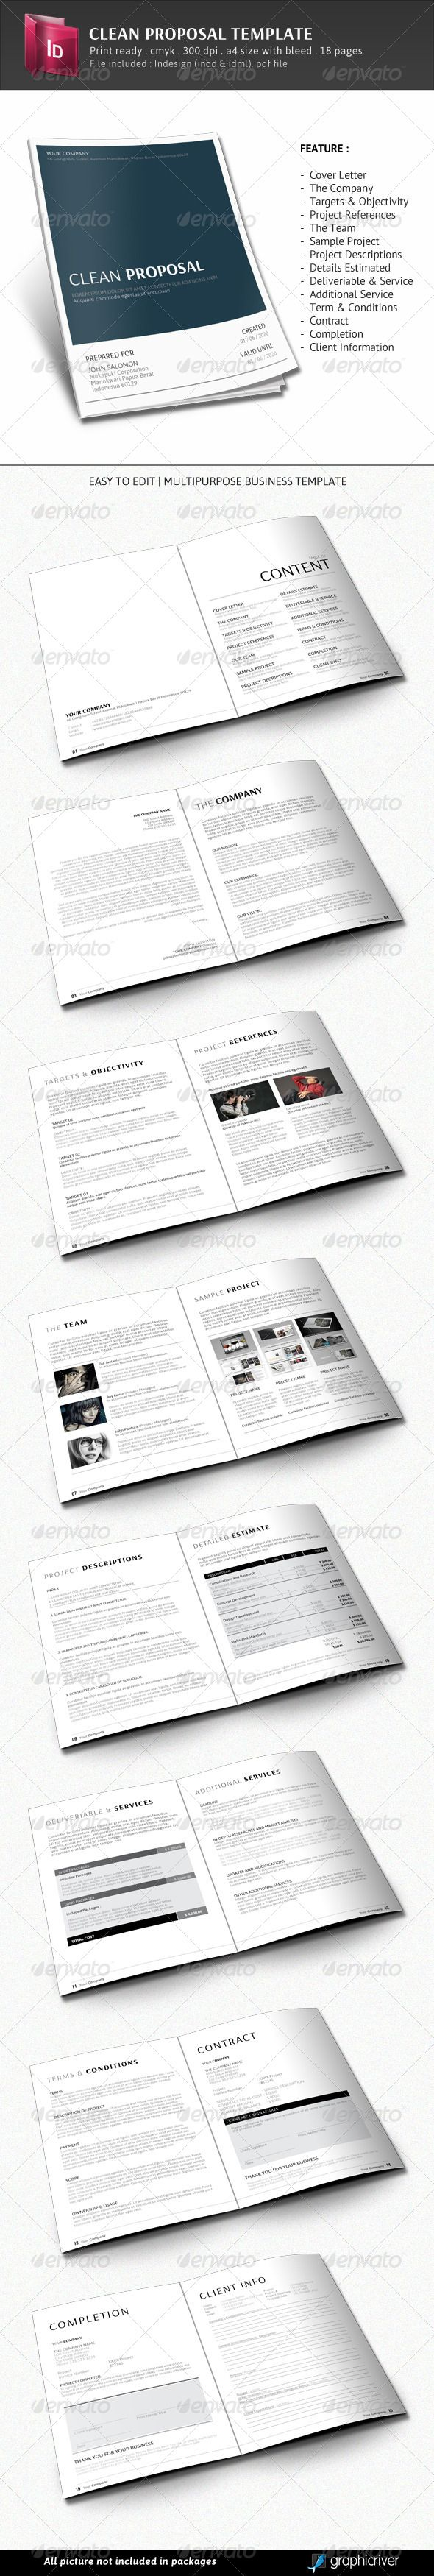 This is a Business Proposal templete created using InDesign CS4 and CS5 . The file is completely editable, all of the fonts used are free and downloadable.